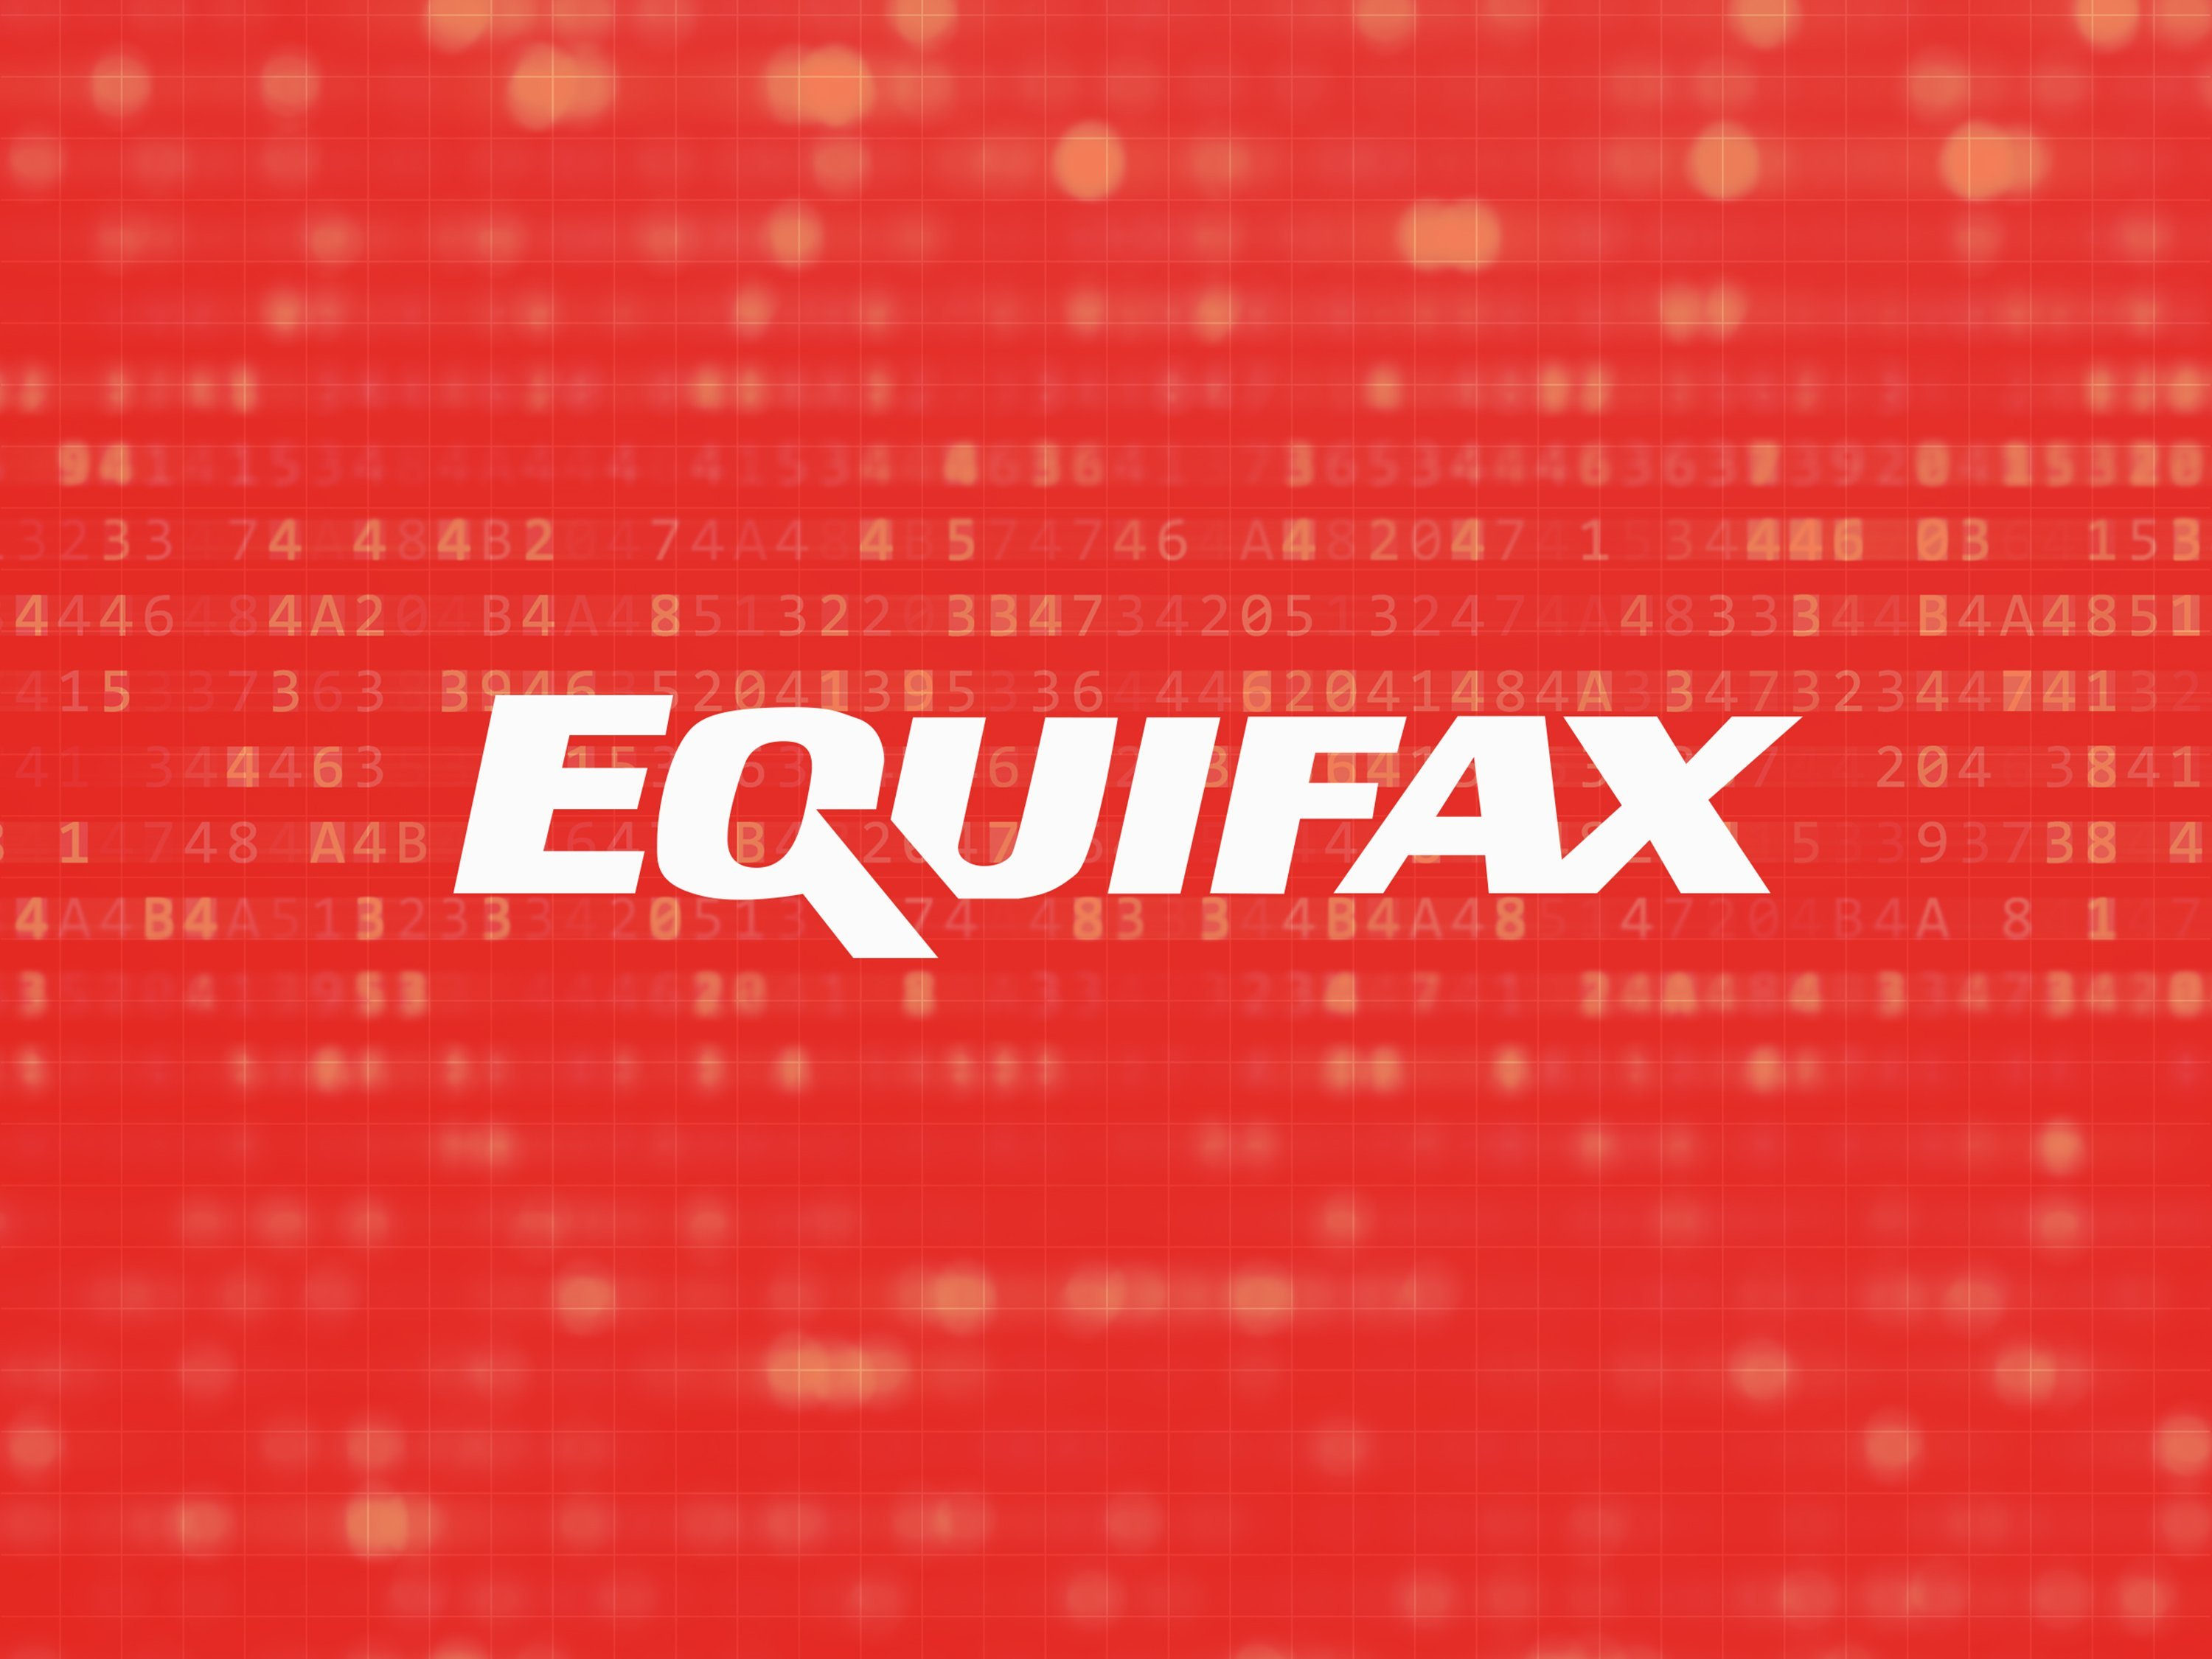 Equifax reportedly near deal to pay about $700 million over data breach